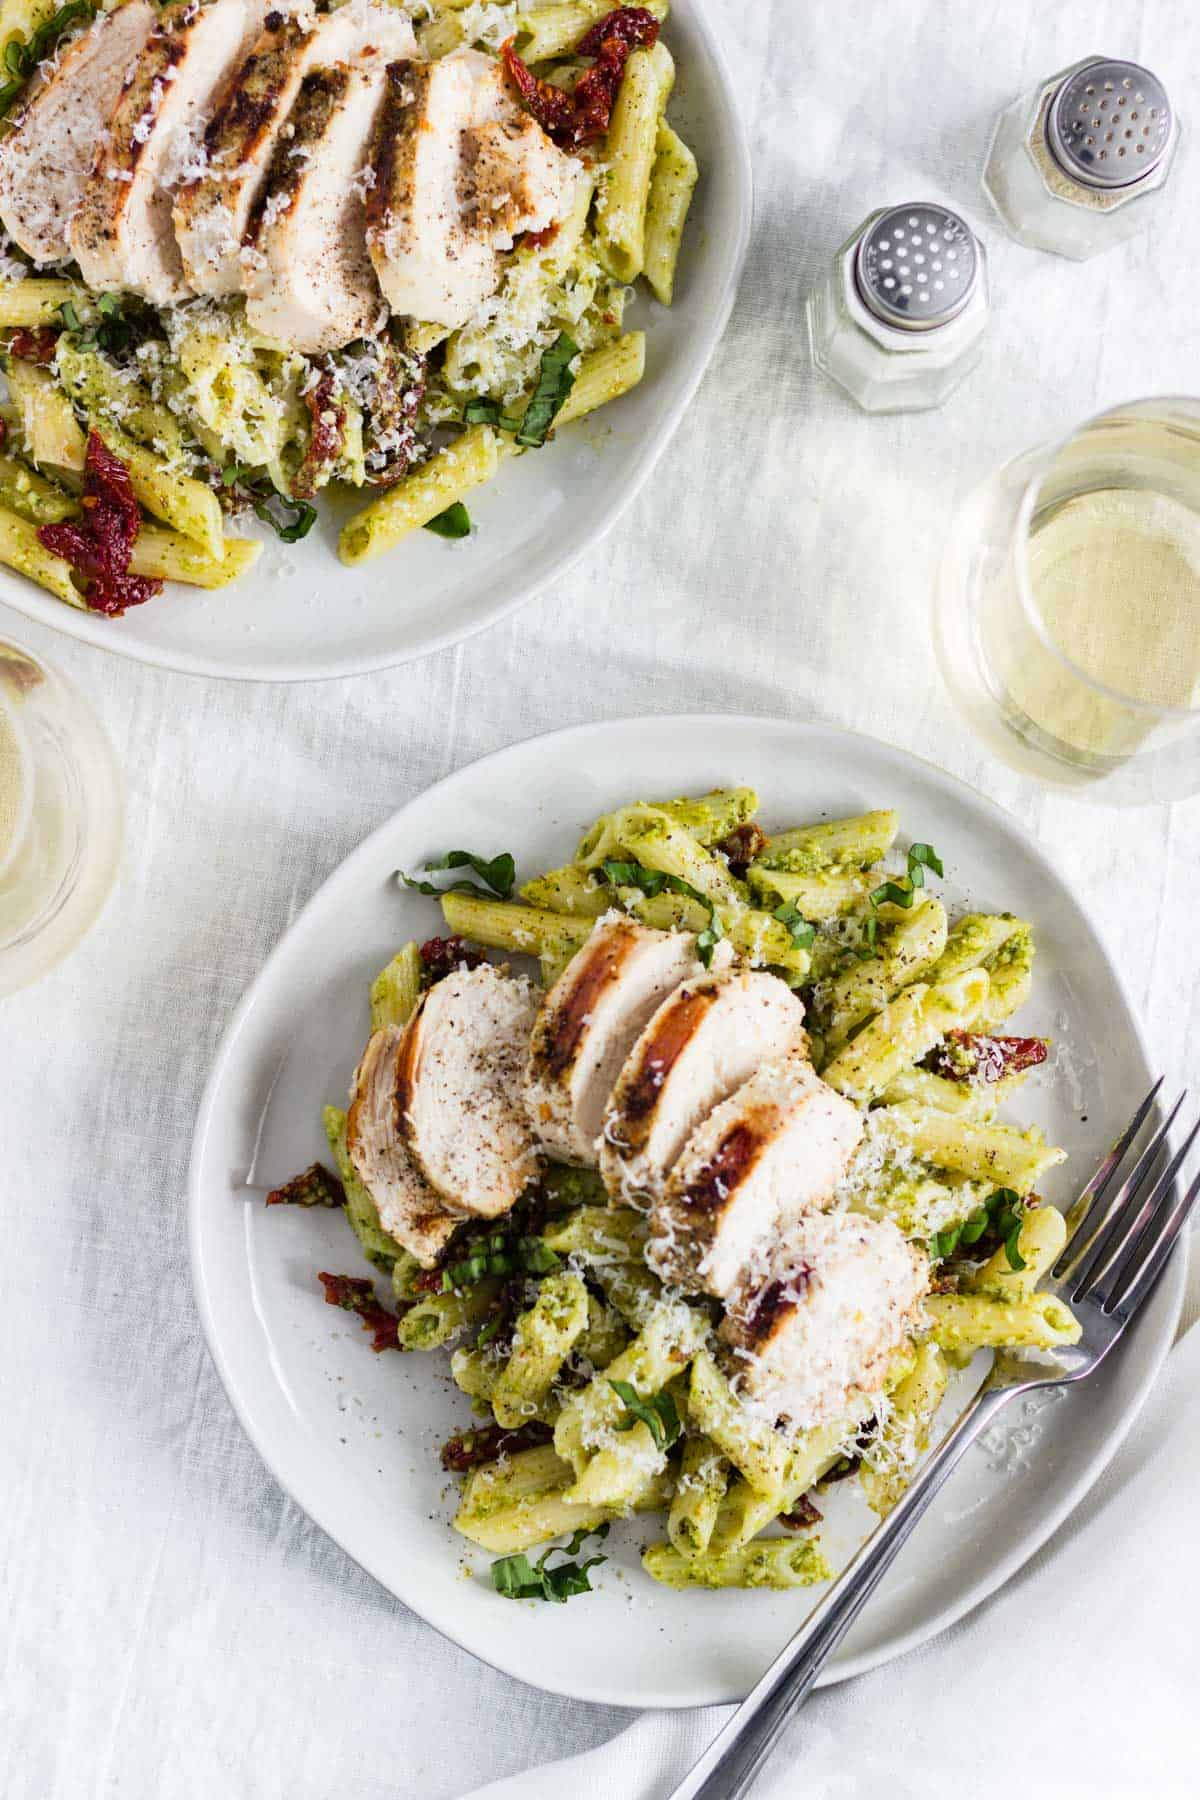 Two plates of creamy pesto pasta with chicken and sun-dried tomatoes on a white tablecloth. Two glass of white wine sit nearby.